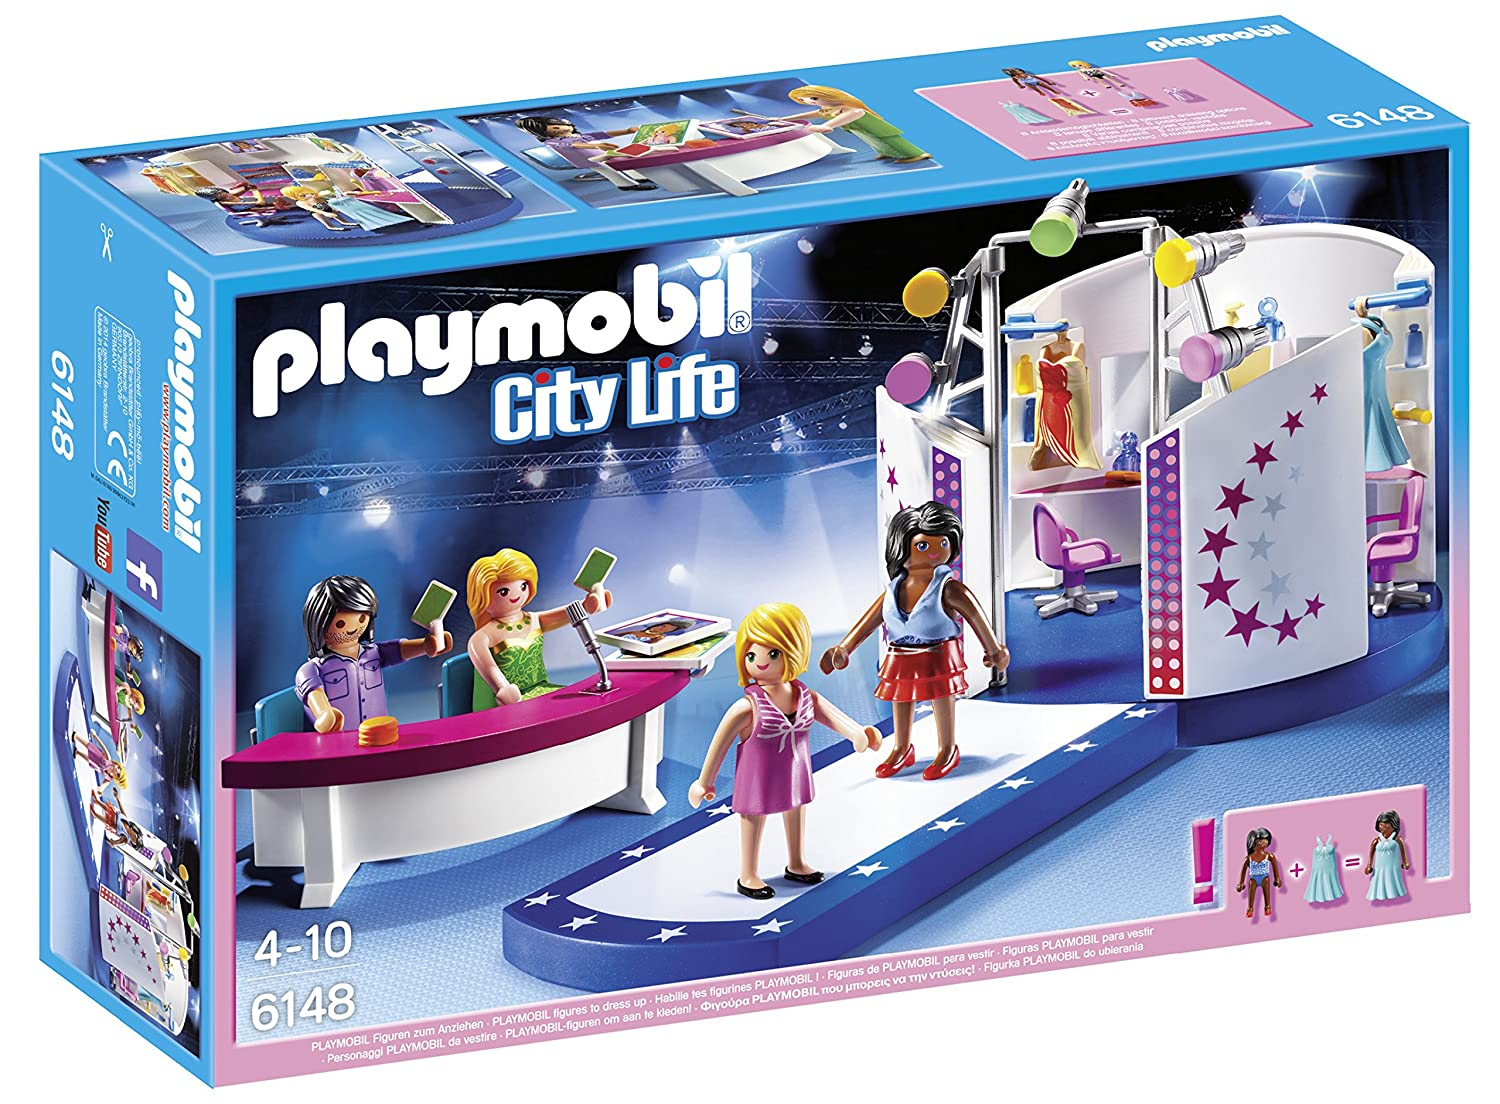 Playmobil City Life Küche 9269 Hot Deal Amazon Big Markdowns On Playmobil Sets Save